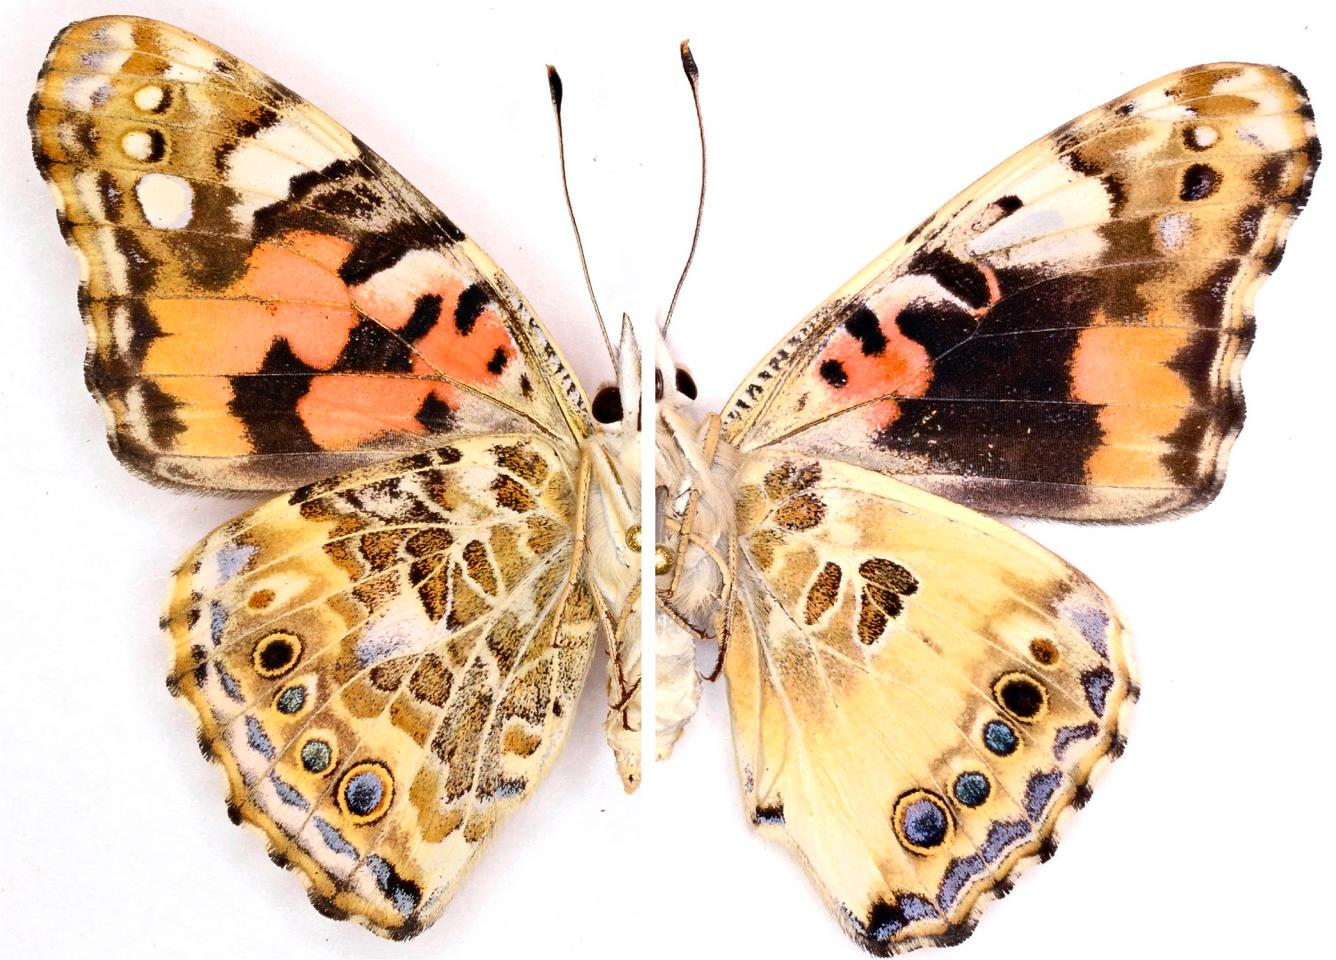 The left side of this Painted Lady butterfly shows a typical specimen's wing, while the right side shows the effects post-CRISPR